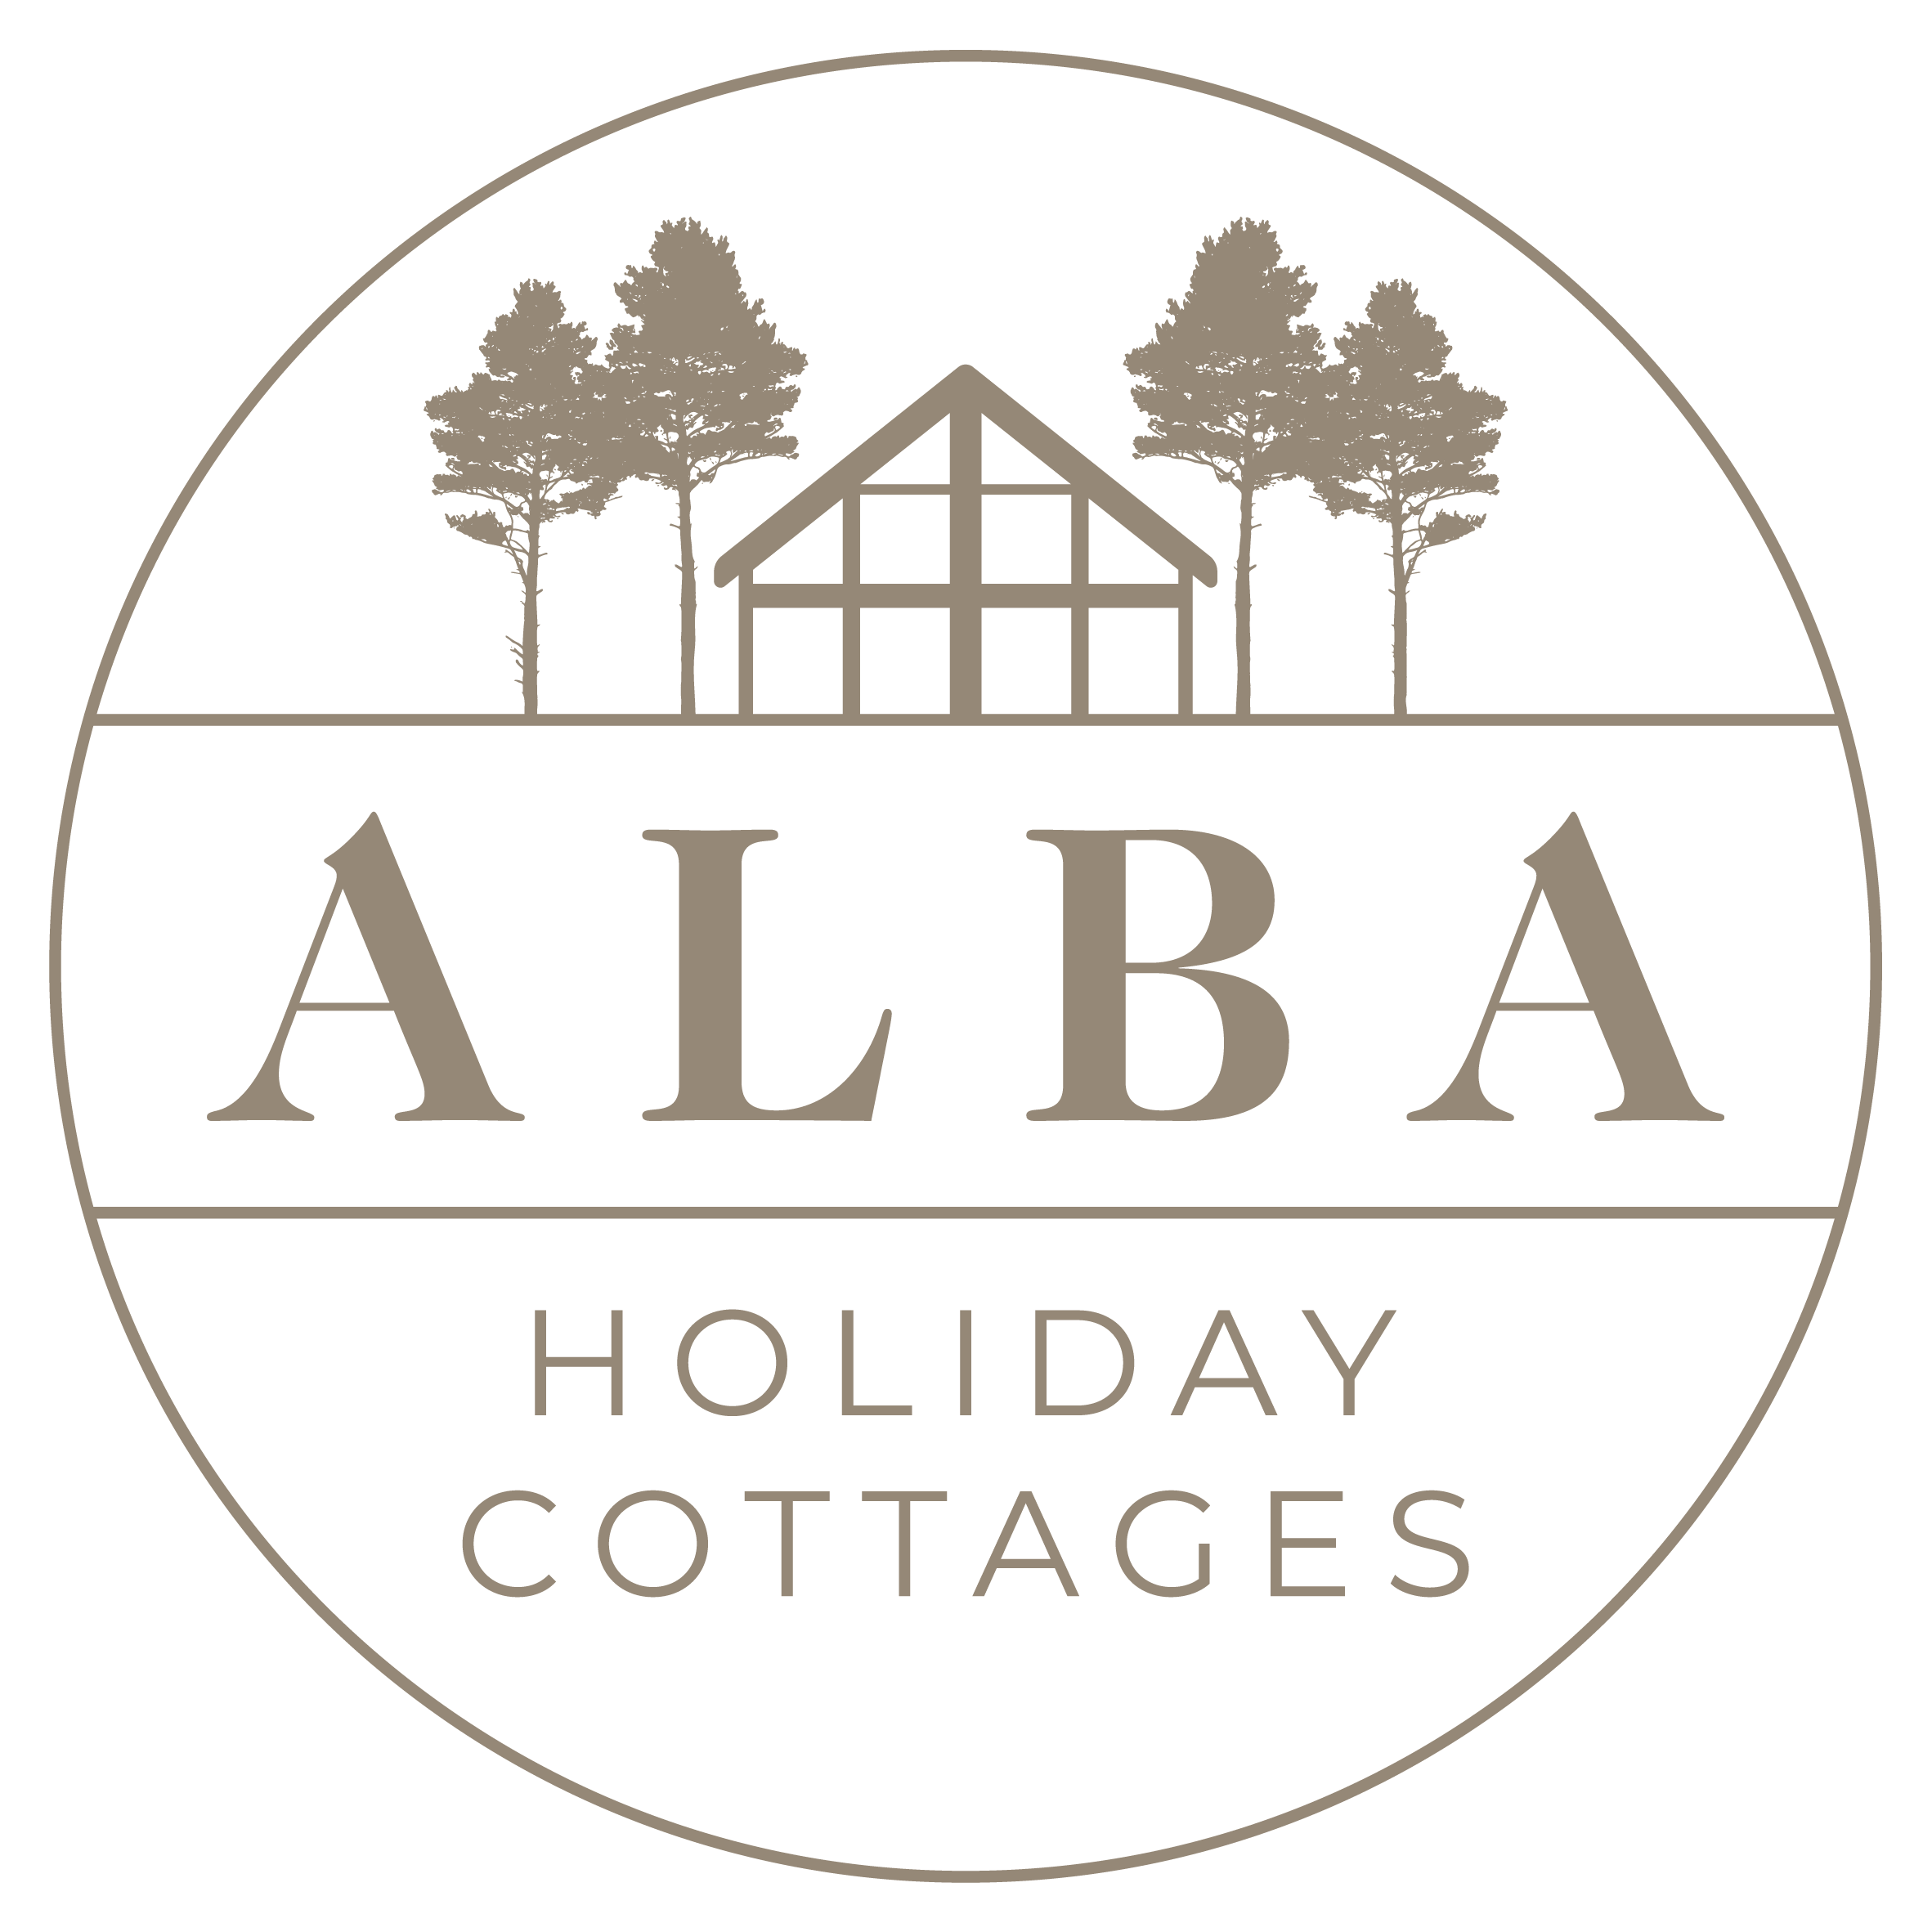 Alba Holiday Cottages